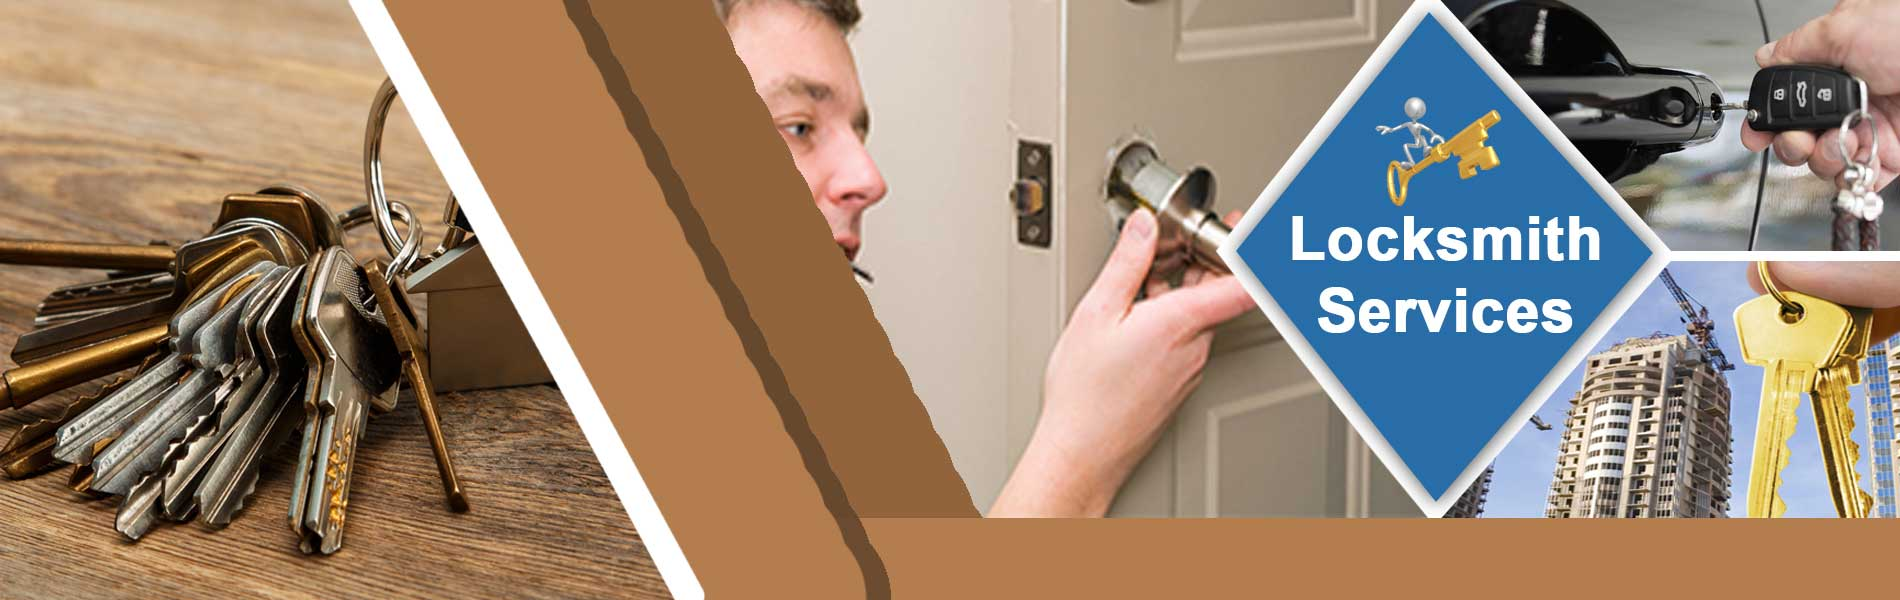 Community Locksmith Store Park Ridge, IL 847-713-5688